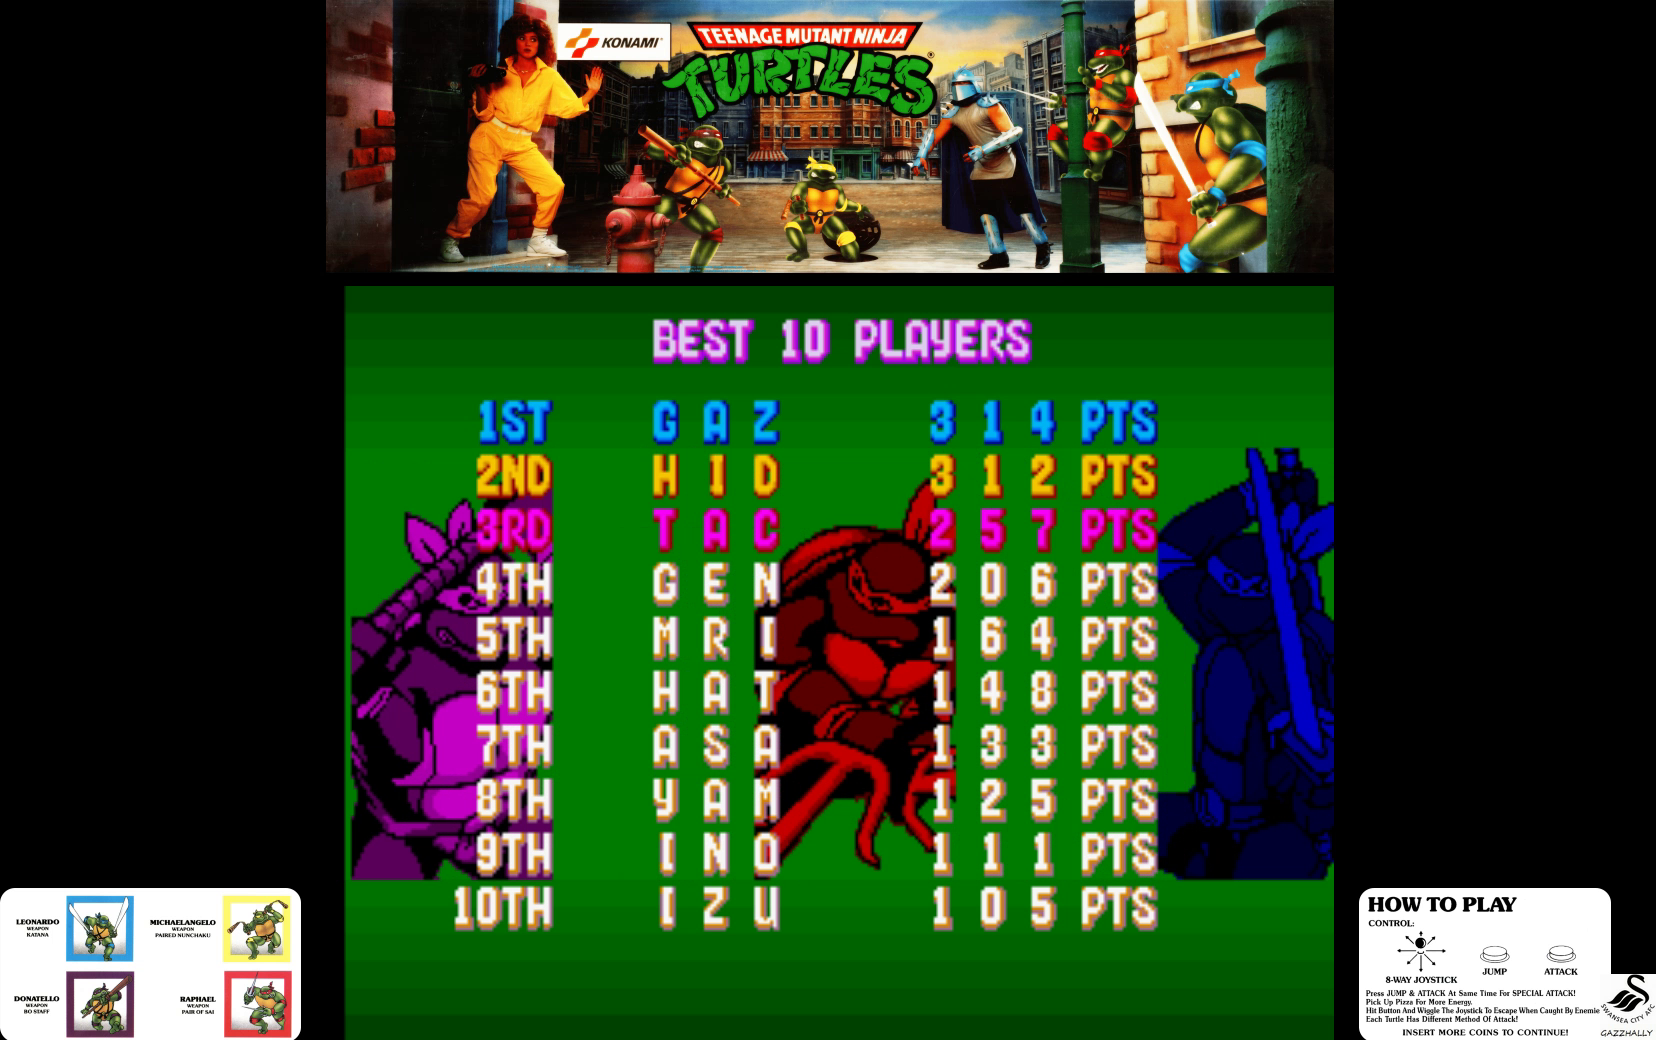 gazzhally: Teenage Mutant Ninja Turtles [tmnt] (Arcade Emulated / M.A.M.E.) 314 points on 2017-07-03 05:57:37